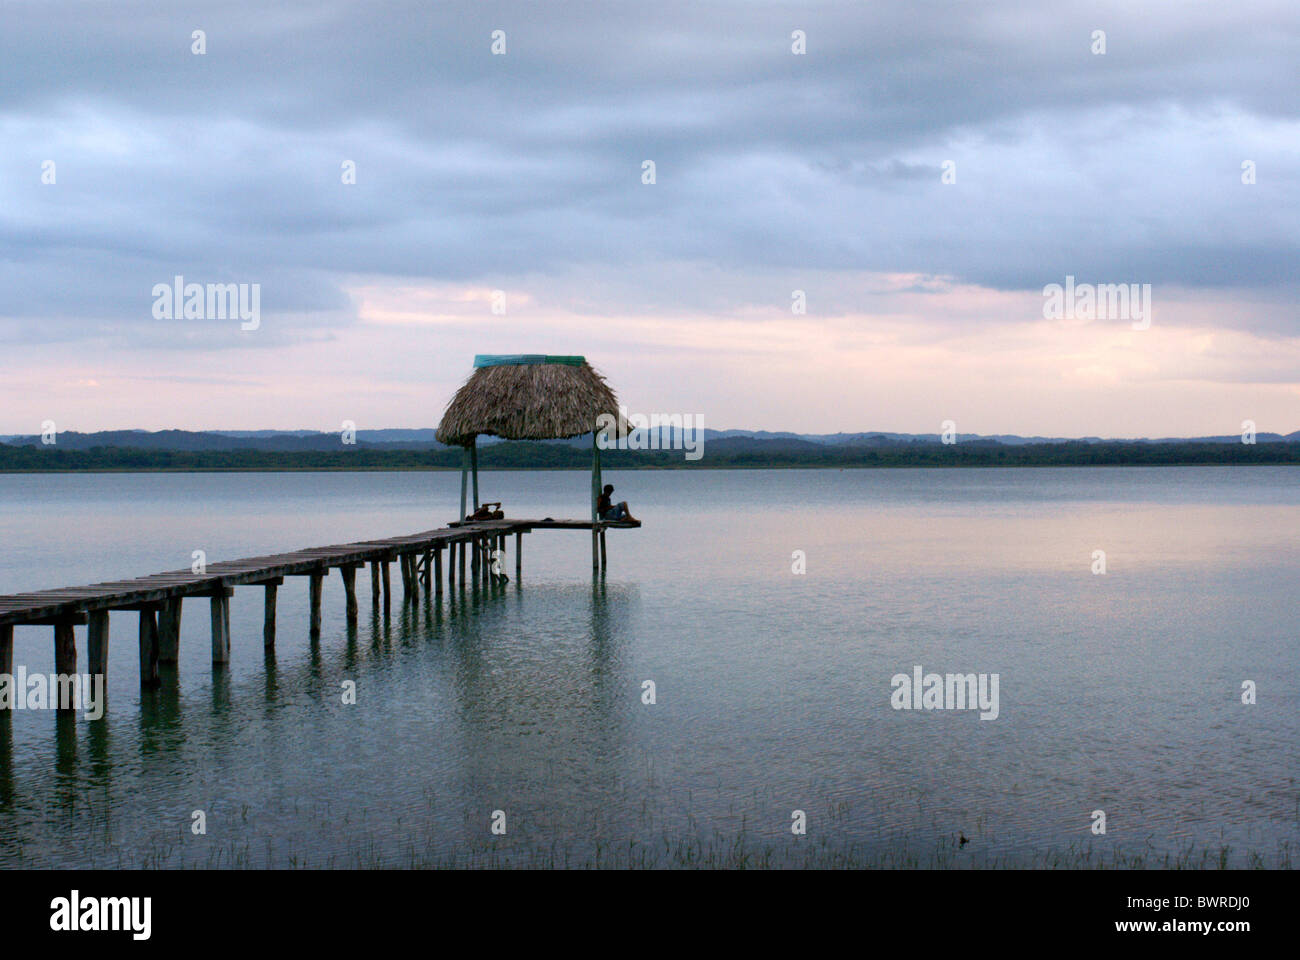 Person sitting on a wooden pier on Lake Peten Itza near Santa Elena, El Peten, Guatemala - Stock Image